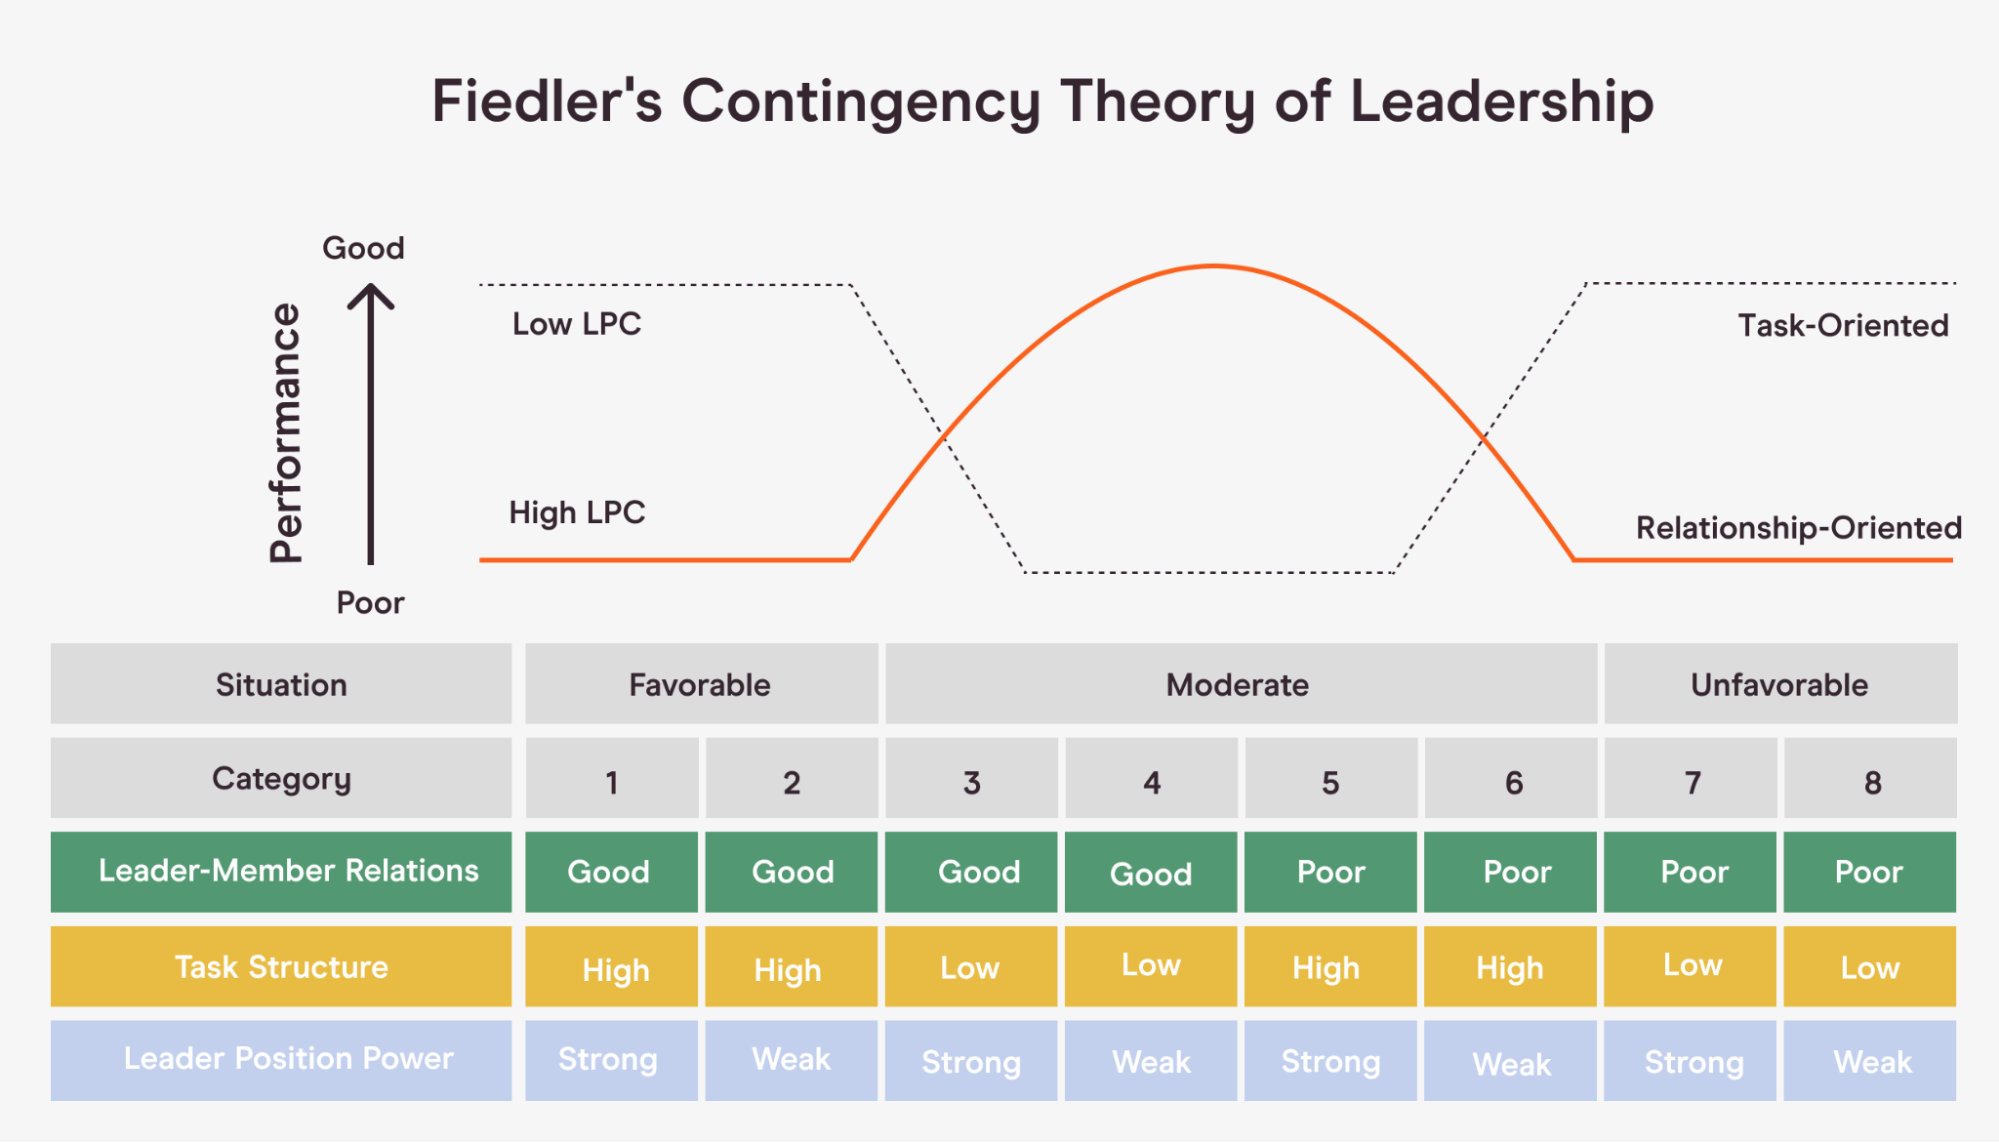 Fiedler Contingency Model for different leadership styles